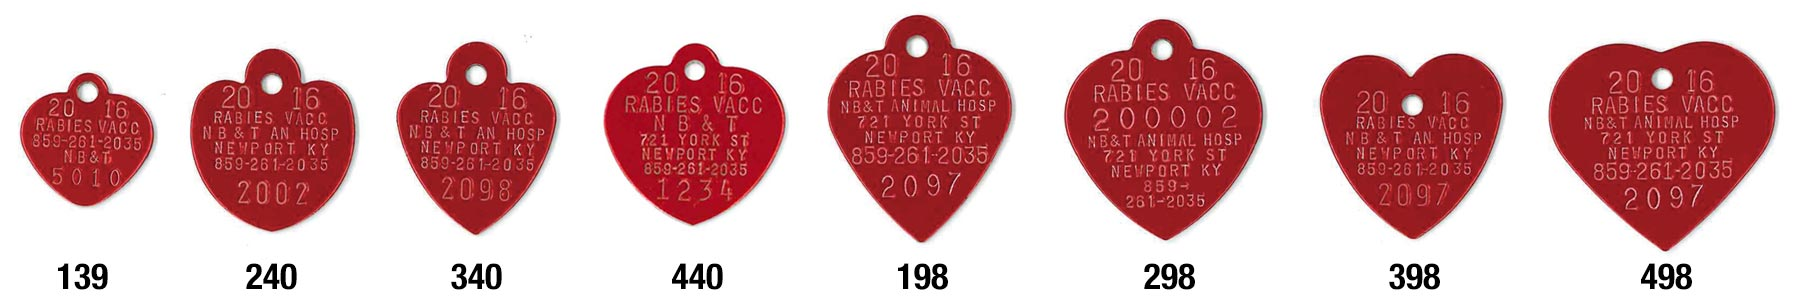 2020 rabies tags red hearts